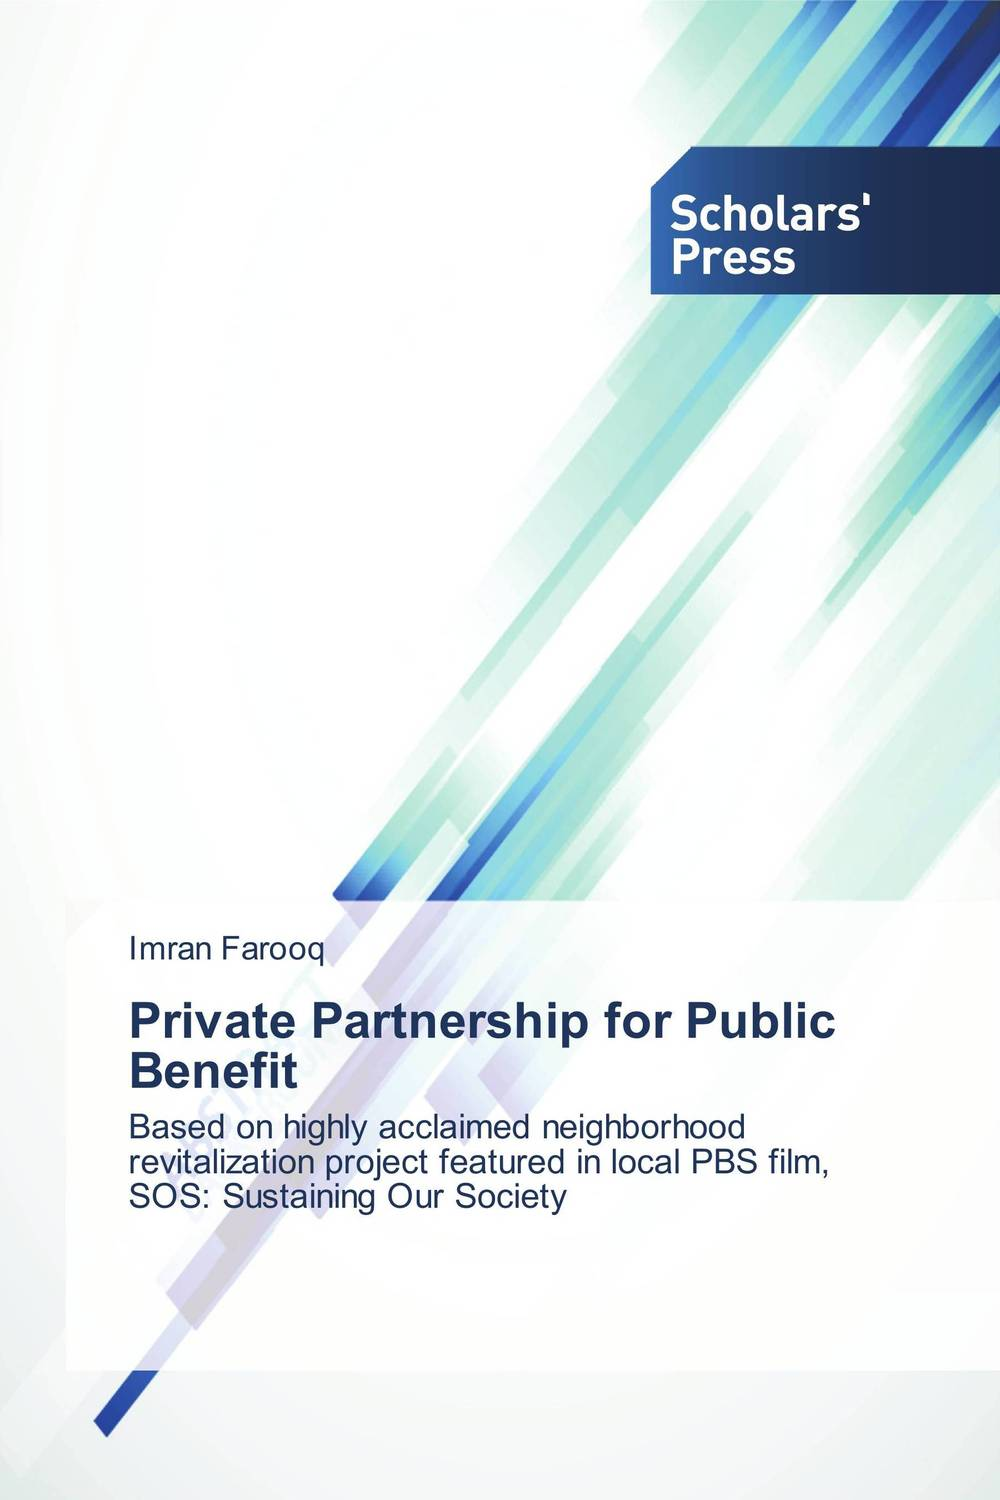 Private Partnership for Public Benefit for their mutual benefit